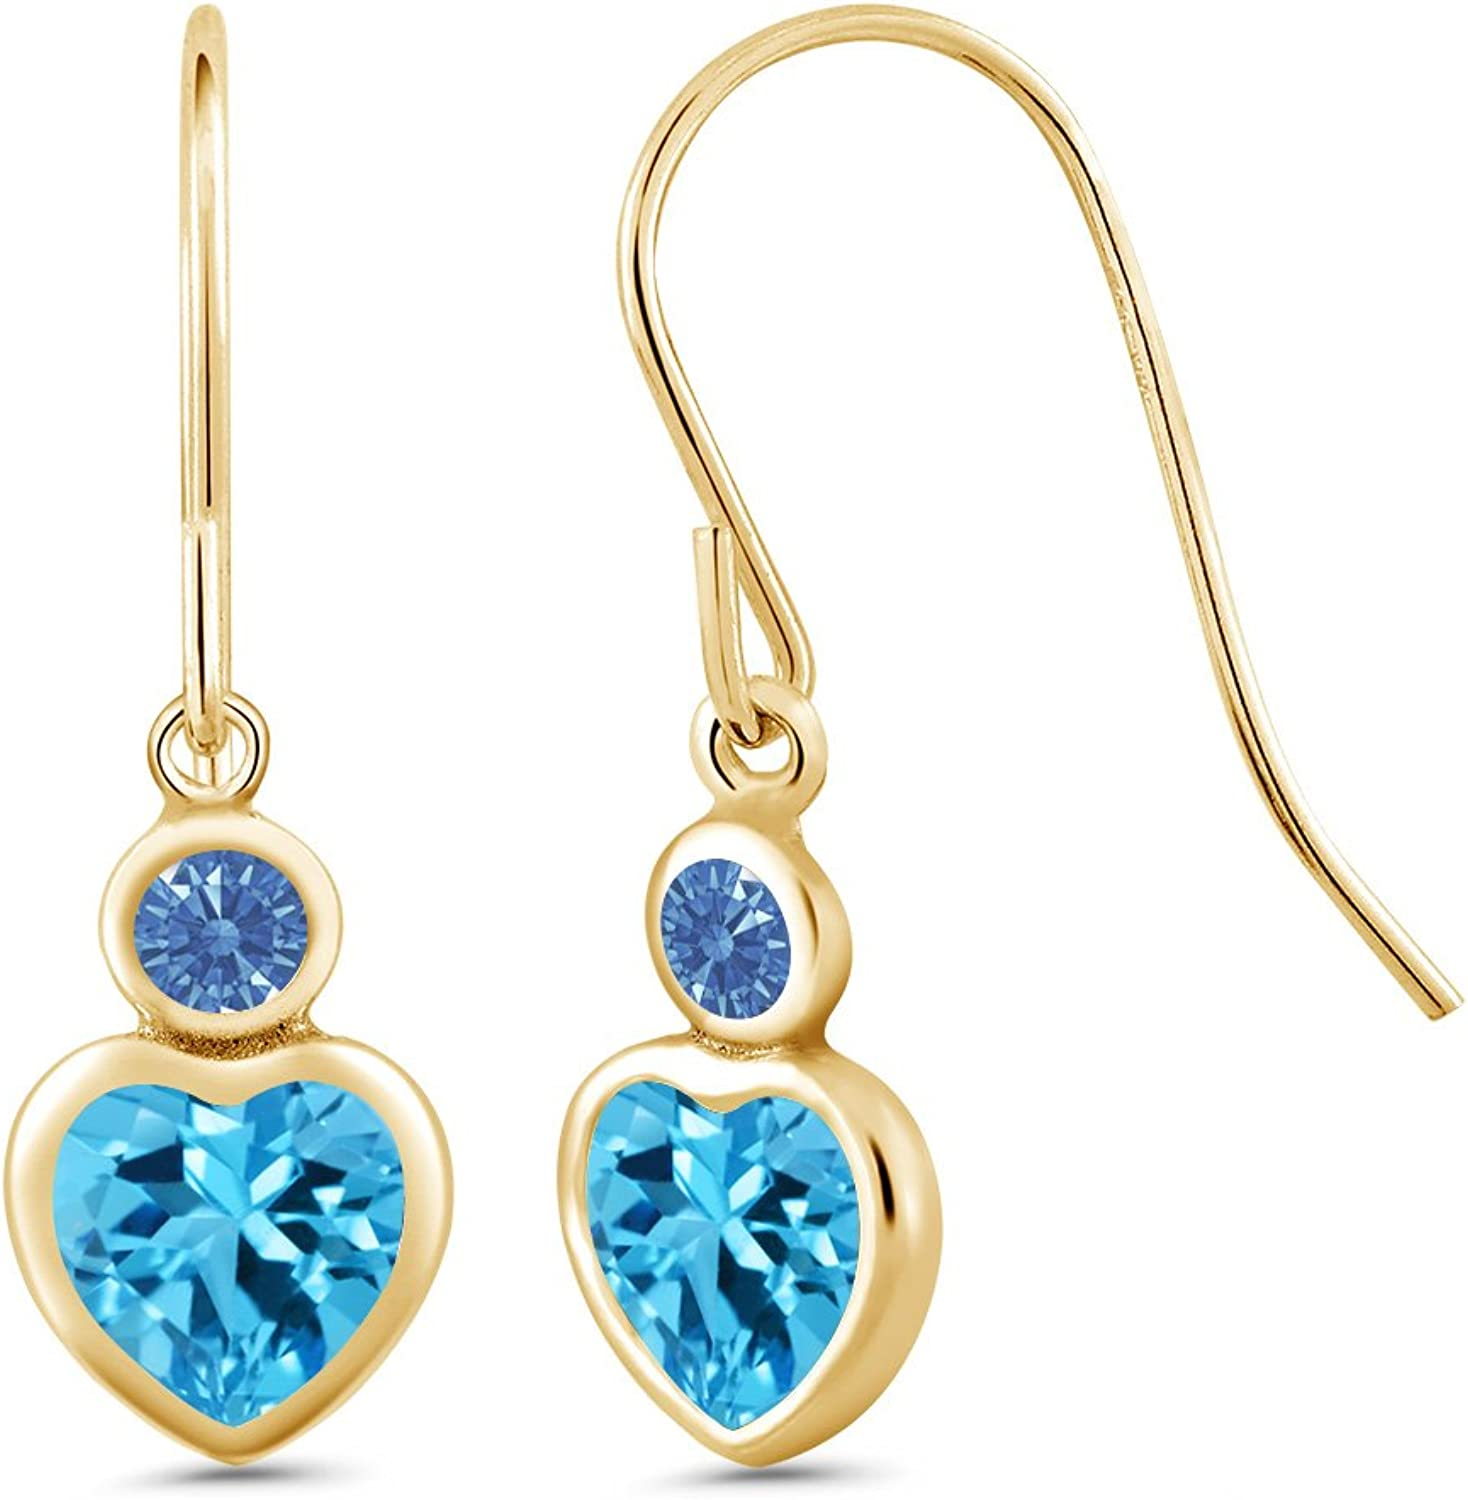 Carlo white Swiss bluee 14K Yellow gold Earrings Made With Swarovski Zirconia